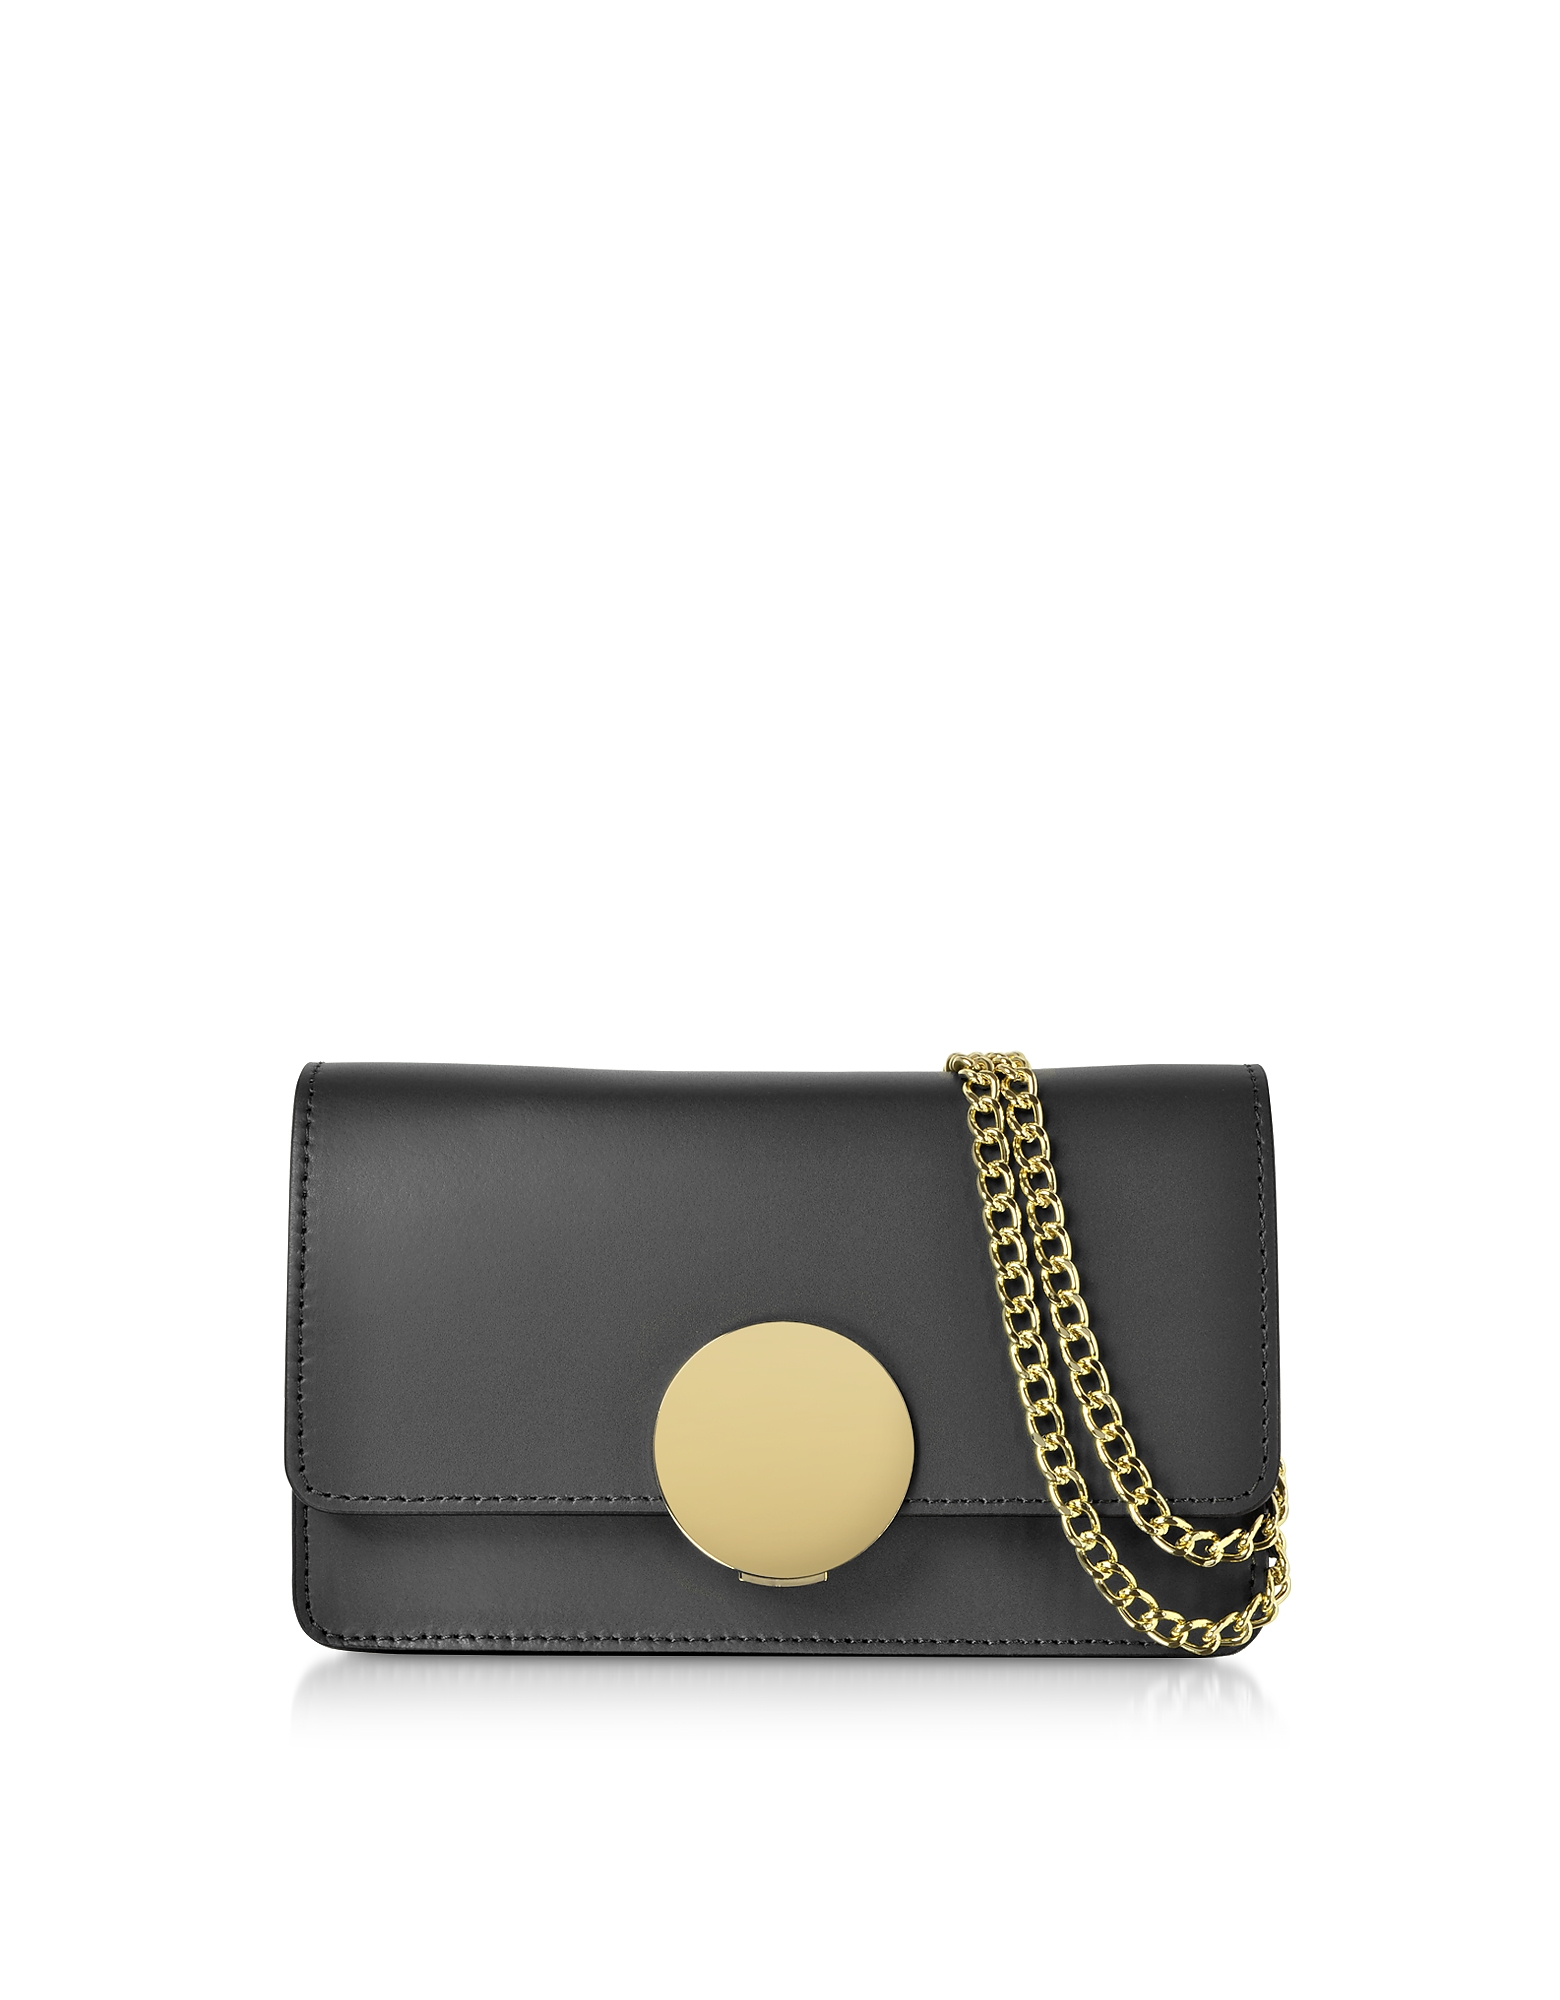 New Ondina Nano Leather and Suede Crossbody Clutch. New Ondina Nano Leather and Suede Crossbody Clutch crafted in smooth genuine Italian calf leather, has a modern lined silhouette and petite form that goes from shoulder to crossbody to clutch making it the perfect all-around accessory. Featuring flap top circular push lock closure, chain and leather shoulder strap, pocket under flap, tonal stitching and gold tone hardware. Hand made in Italy.